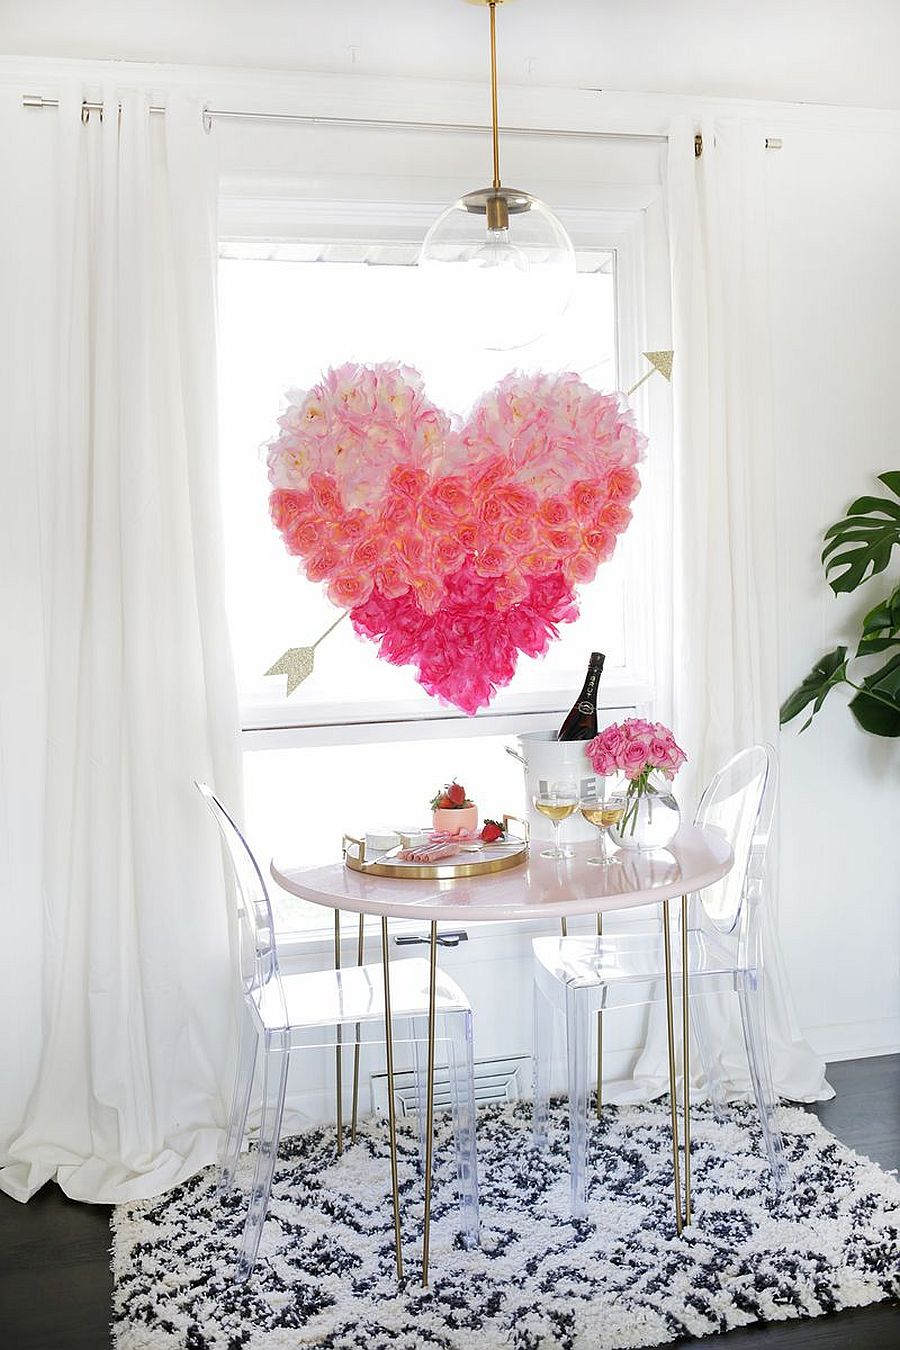 Hanging flower heart can also be used as a decorative addition throughout the year